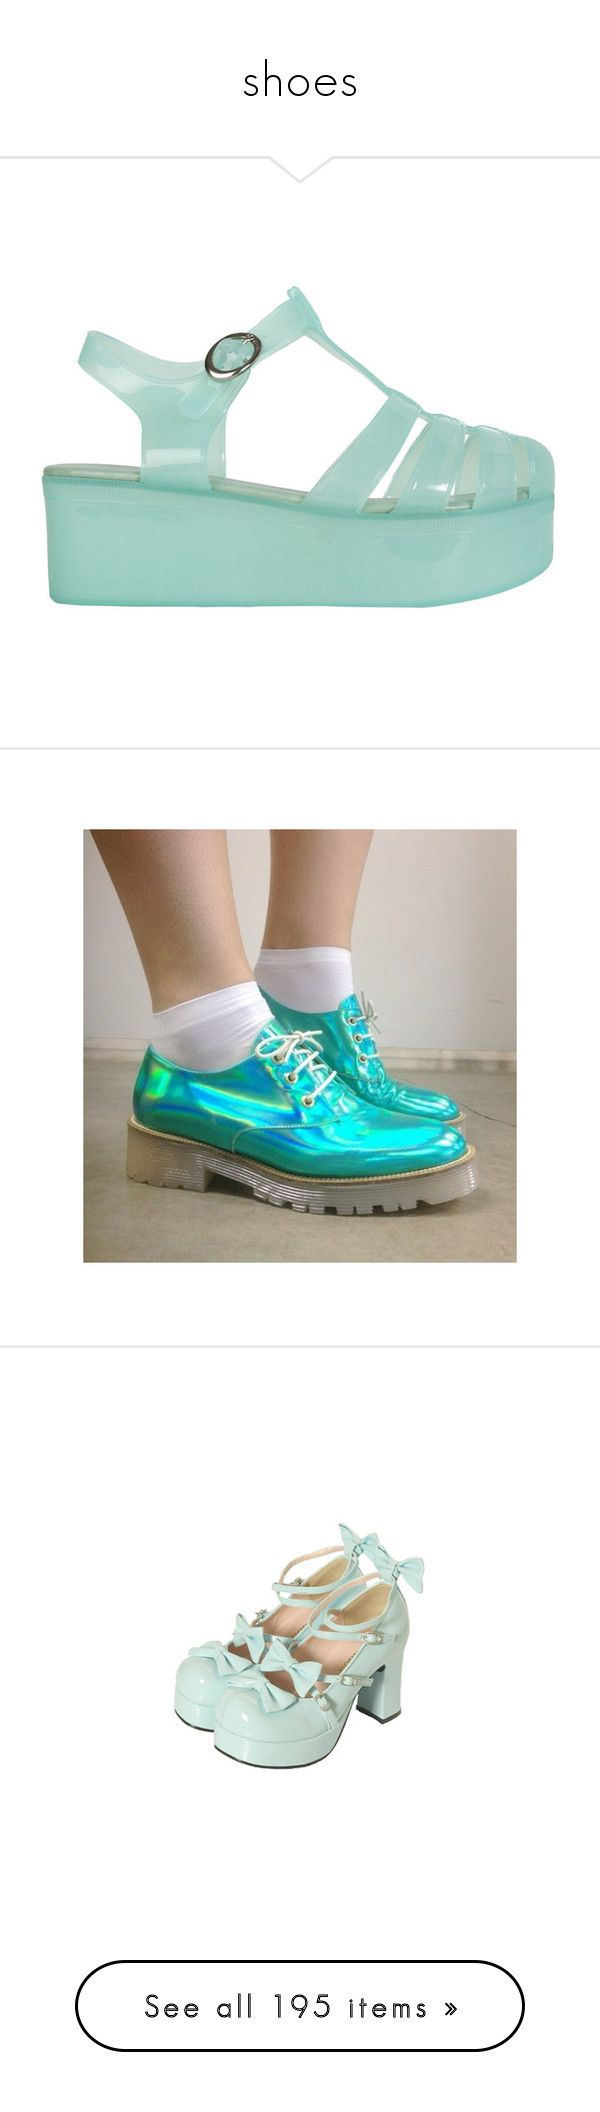 """""""shoes"""" by pastel-dream-hime ❤ liked on Polyvore featuring shoes, sandals, footwear, platform jelly shoes, mint sandals, jelly sandals, mint green shoes, platform sandals, pictures and photos"""